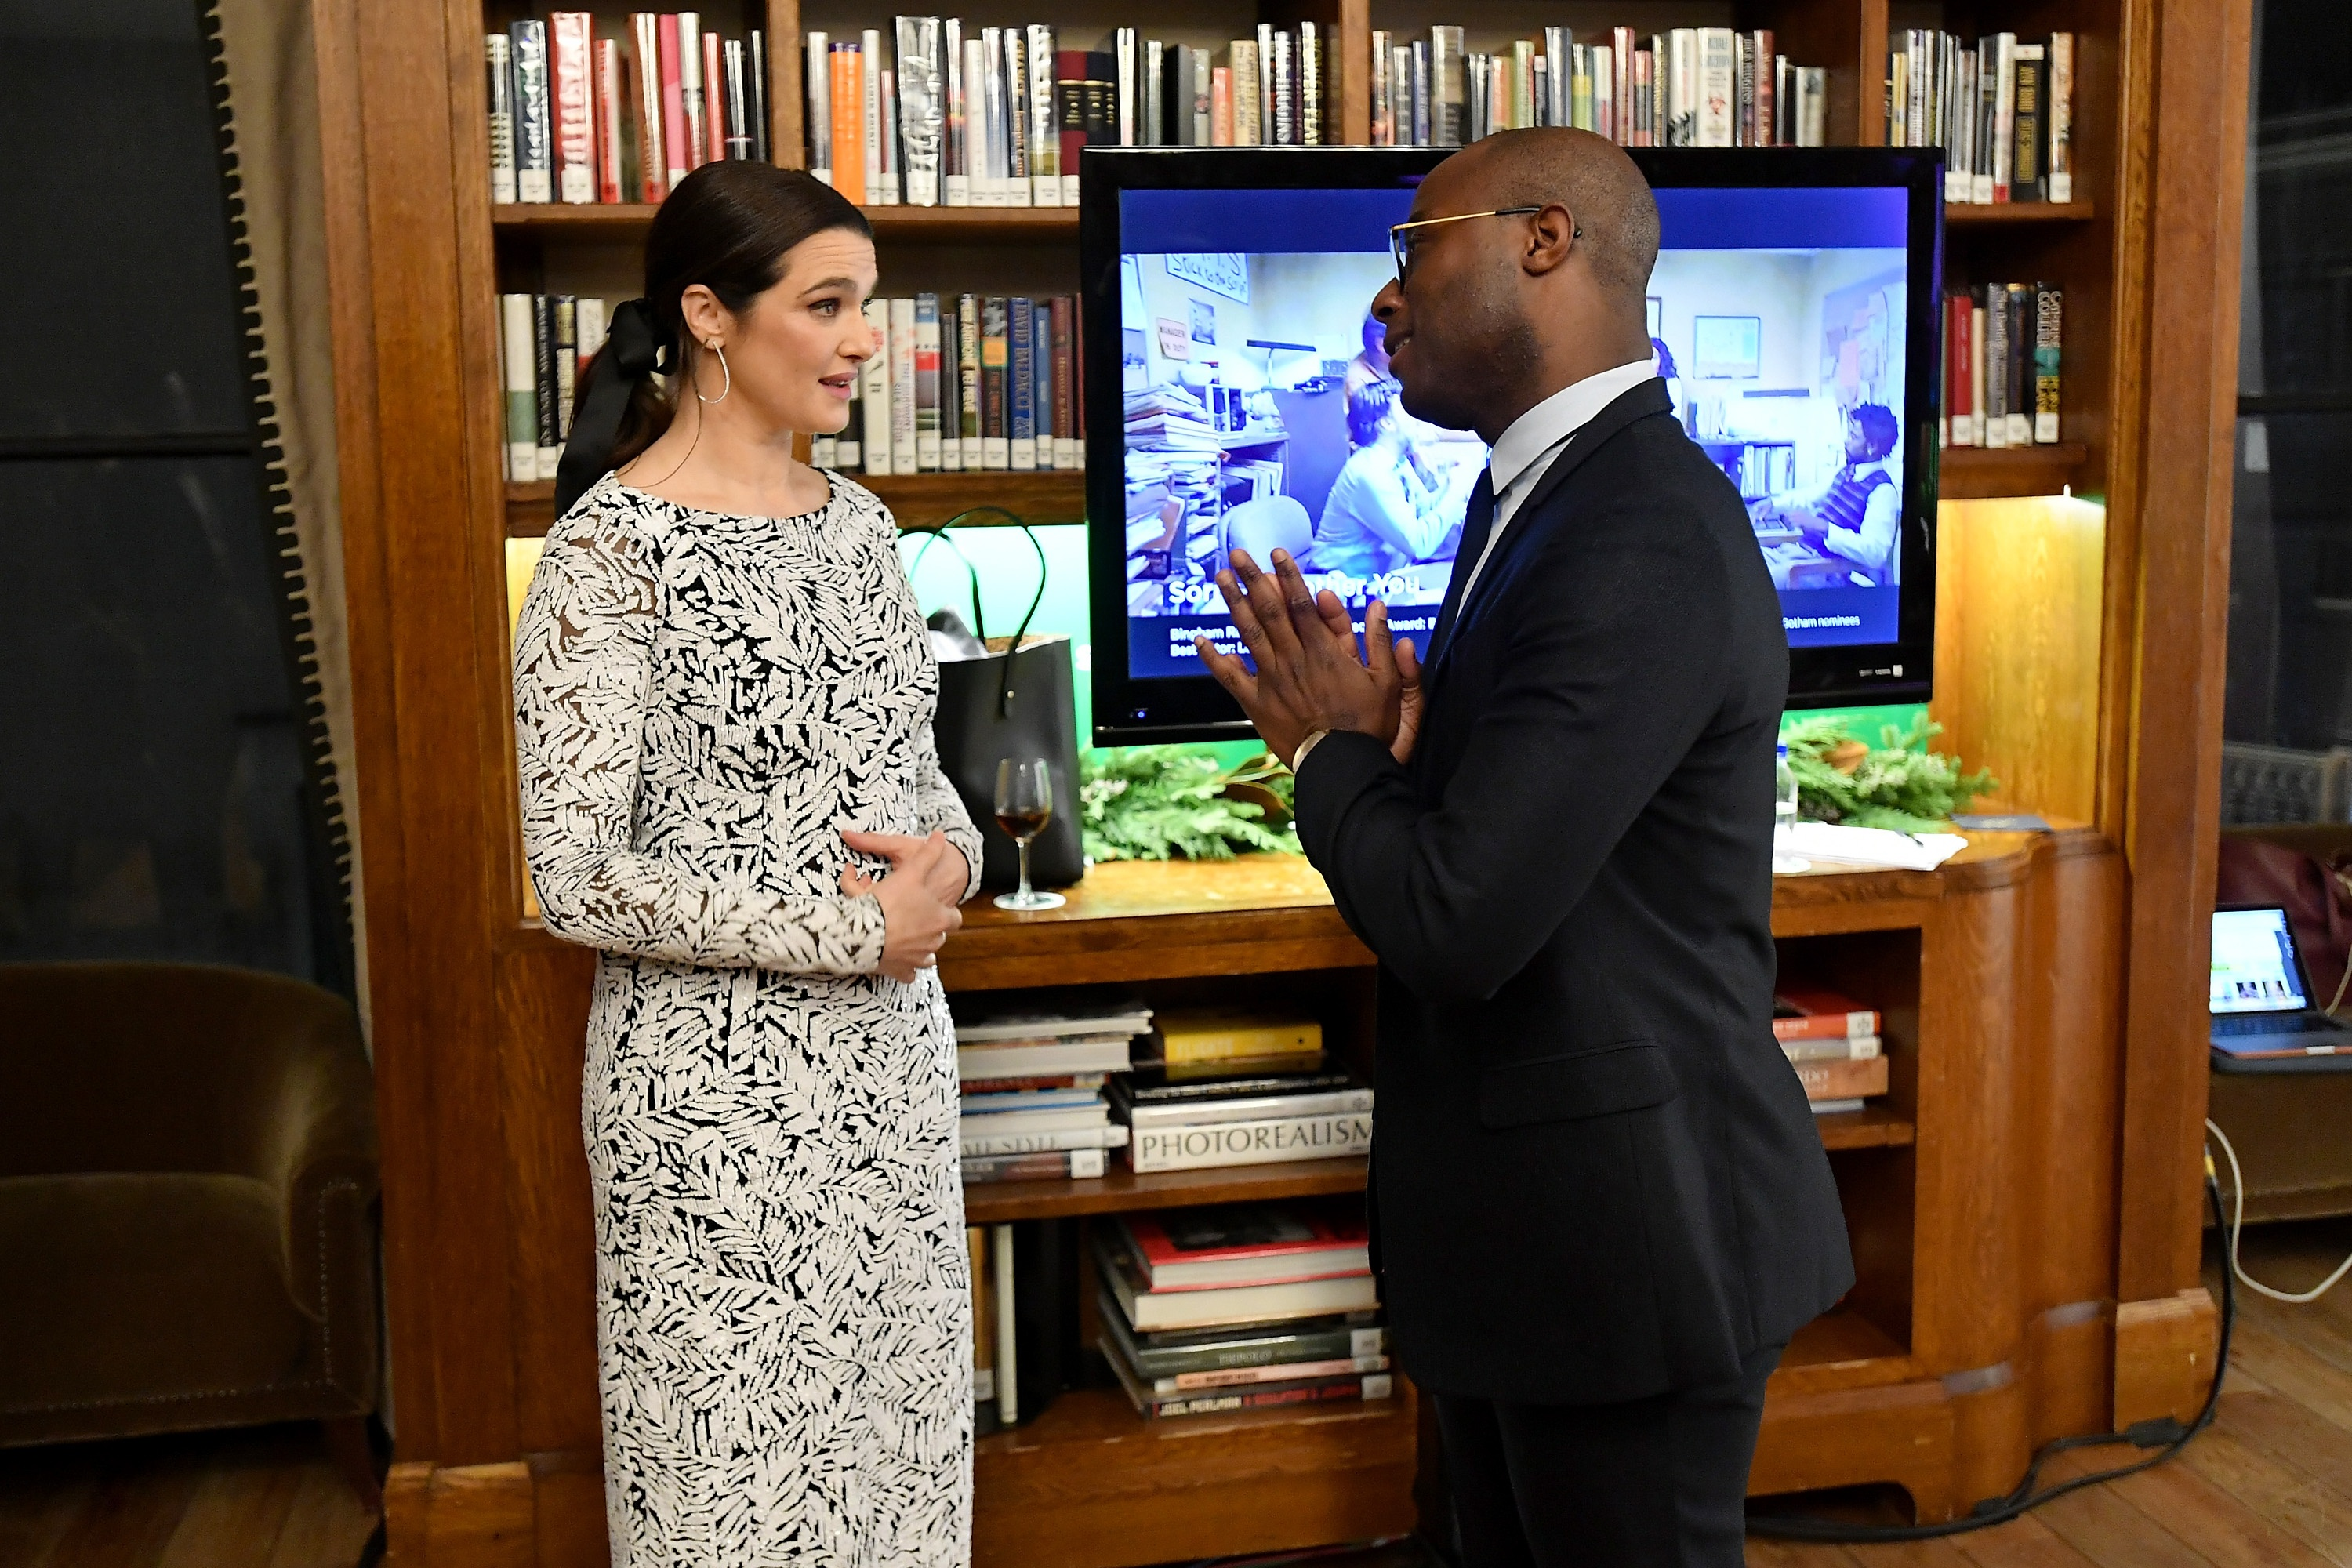 Rachel Weisz and Barry Jenkins backstage in the GreenSlate Greenroom during IFP's 28th Annual Gotham Independent Film Awards at Cipriani, Wall Street on November 26, 2018 in New Yor